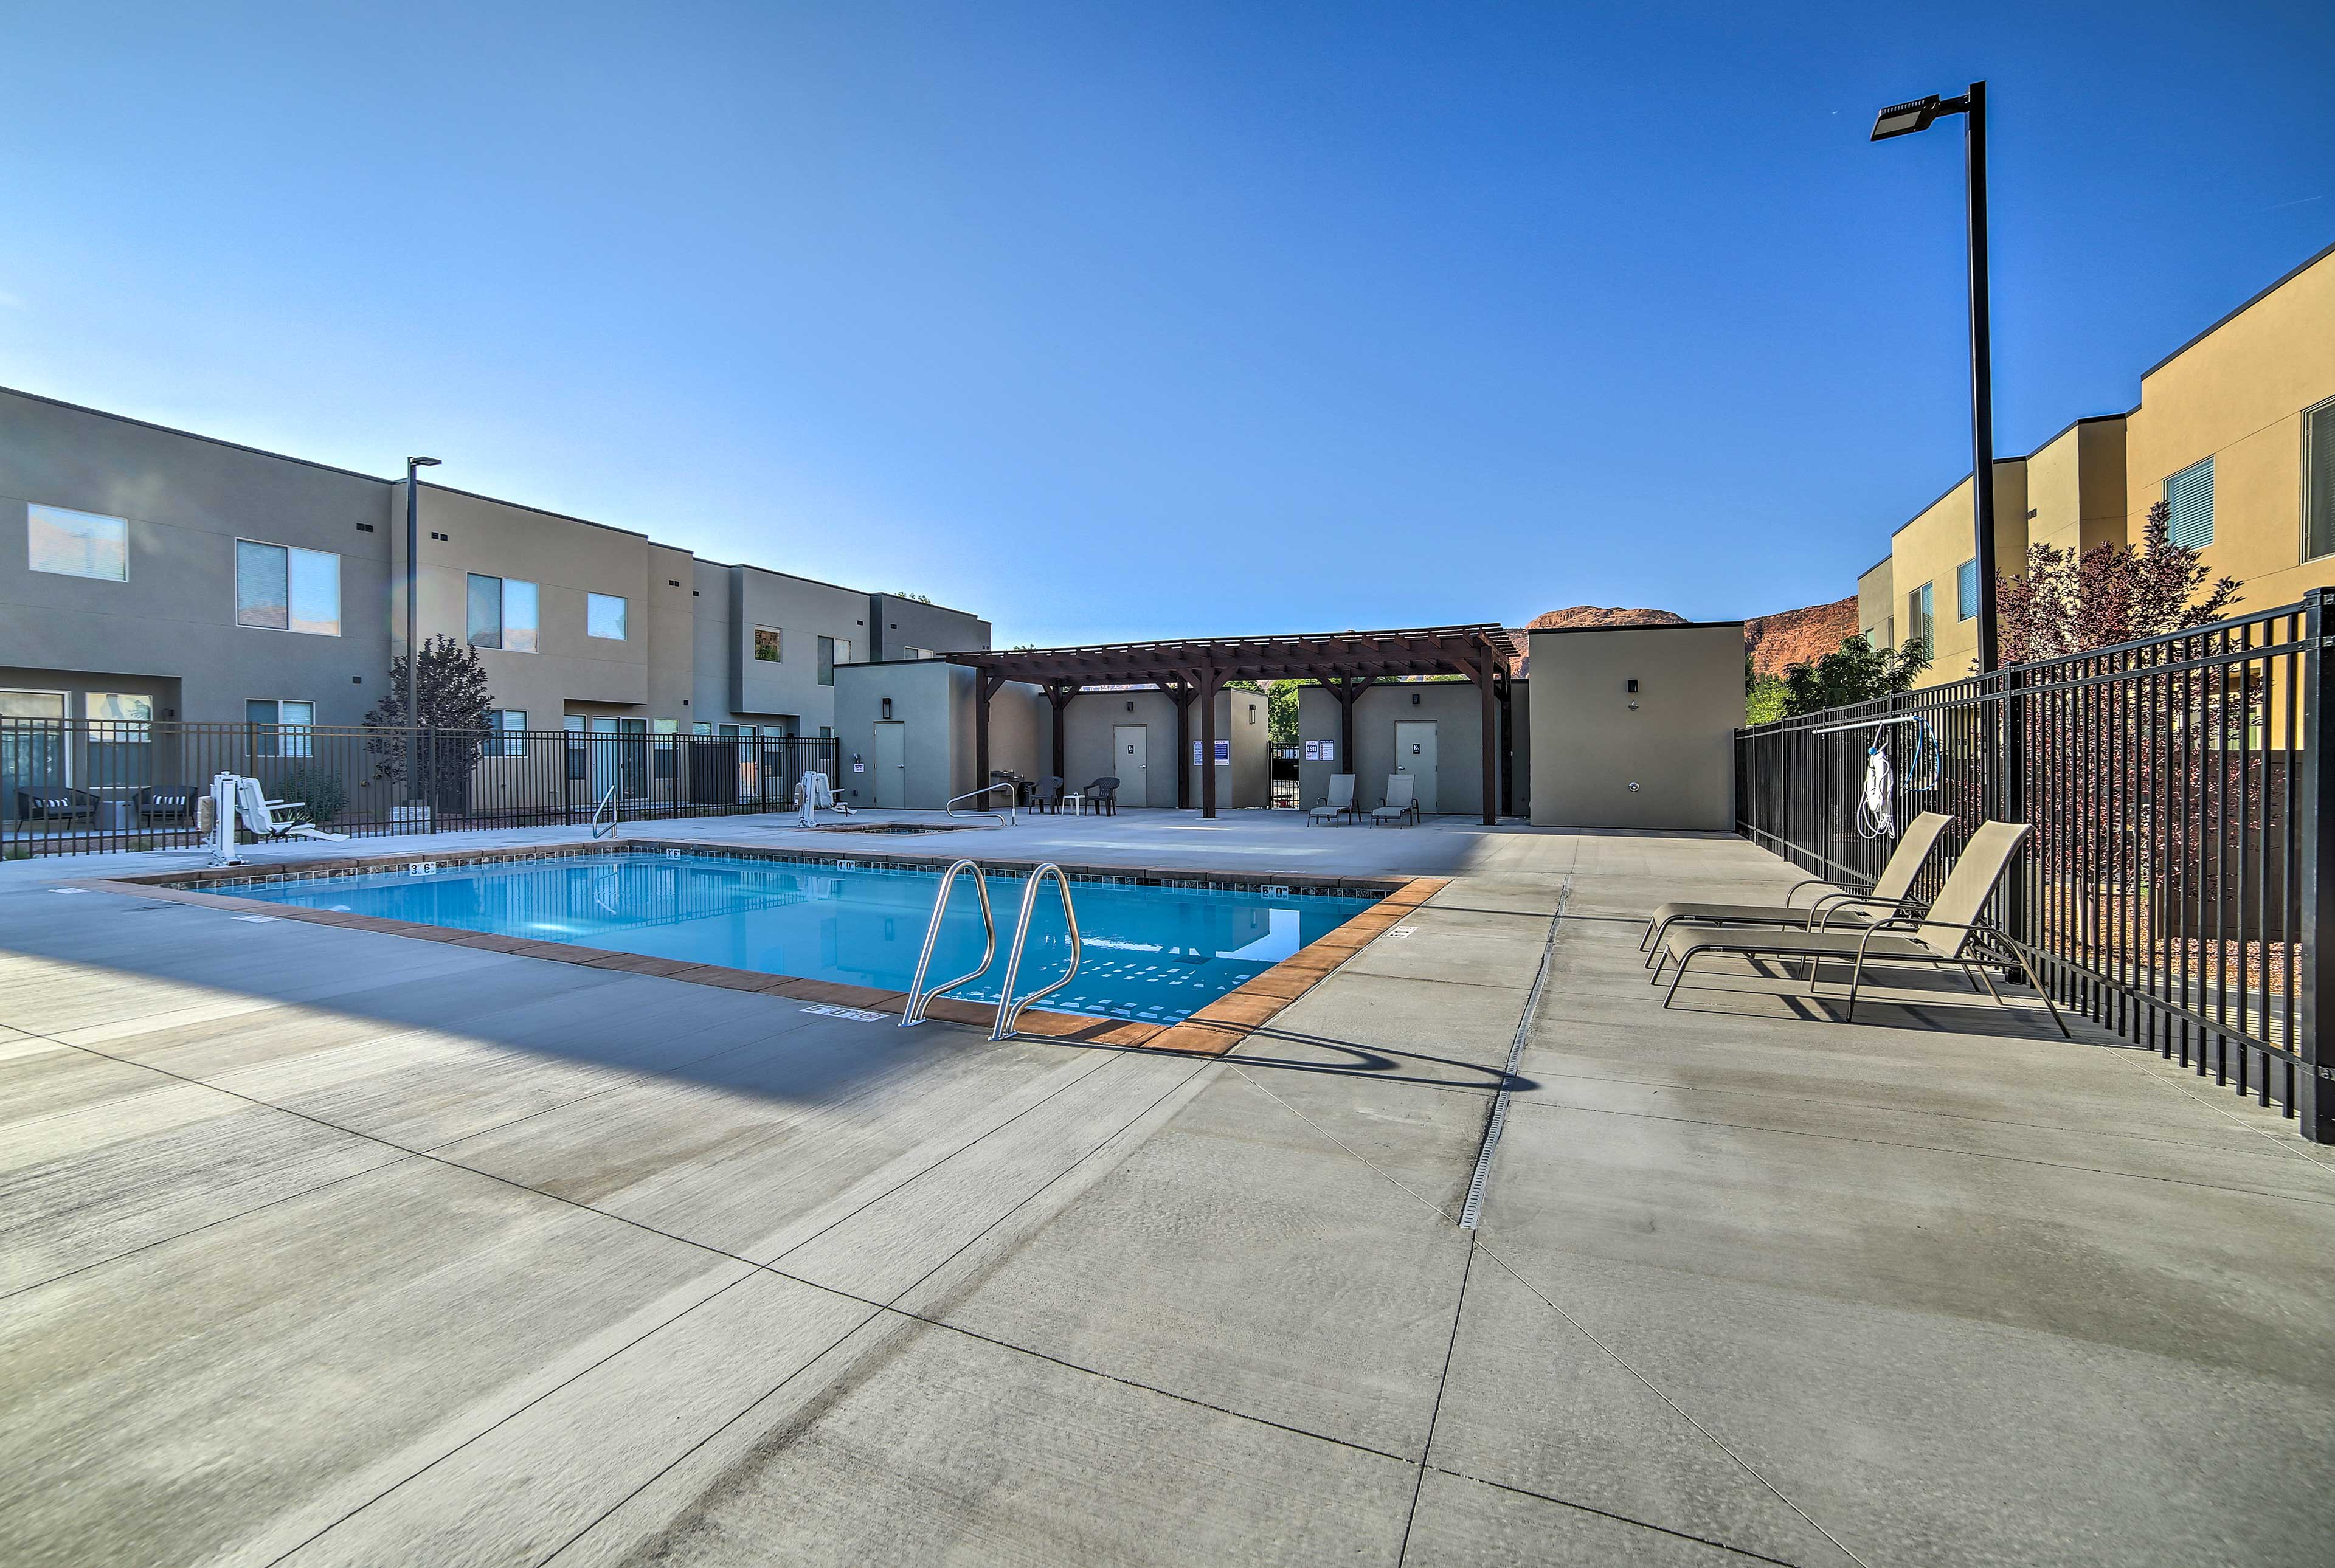 Grab one of the loungers and catch some rays next to the community pool.